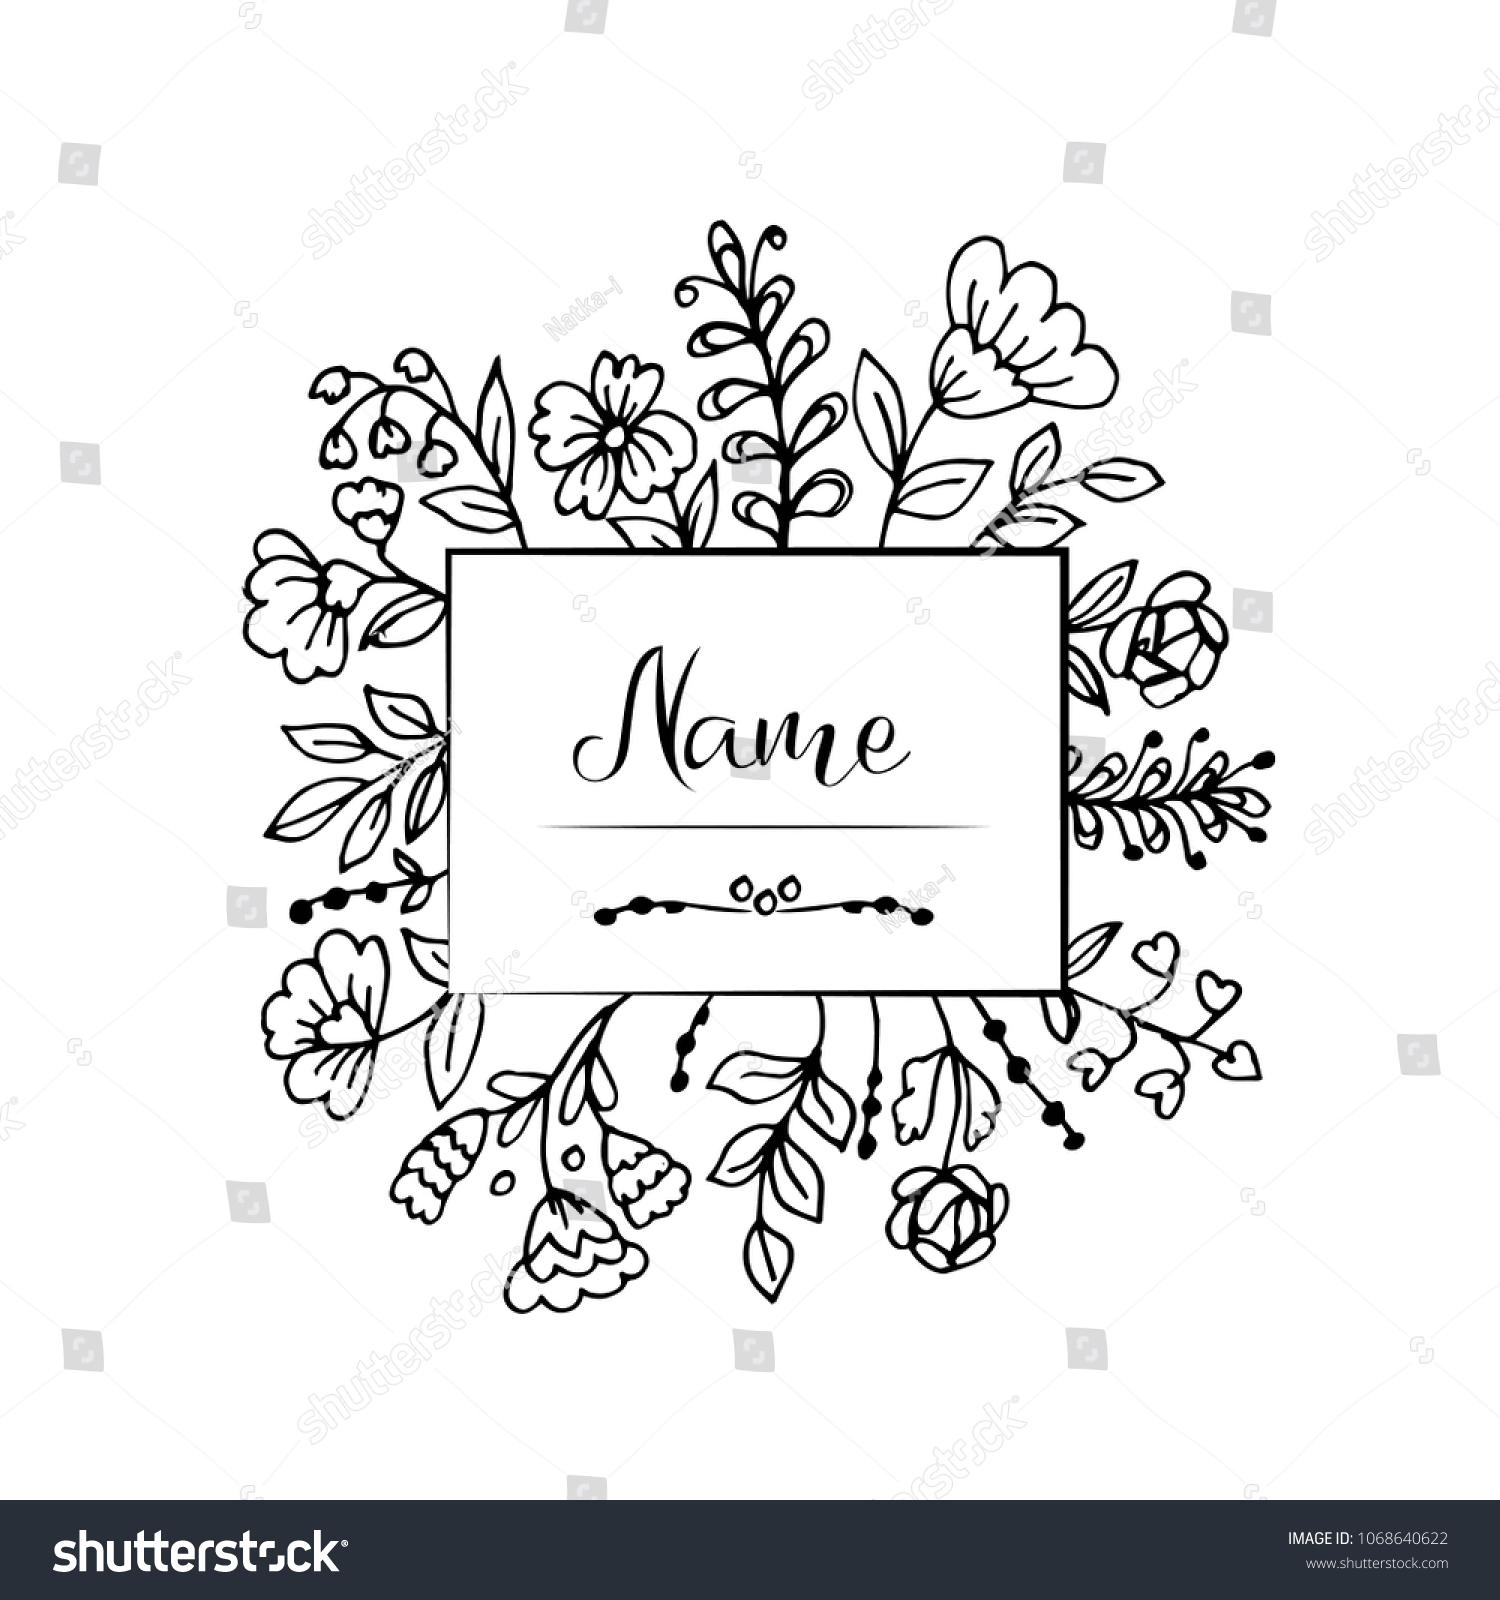 doodle flowers leaves black outline label stock vector (royalty free